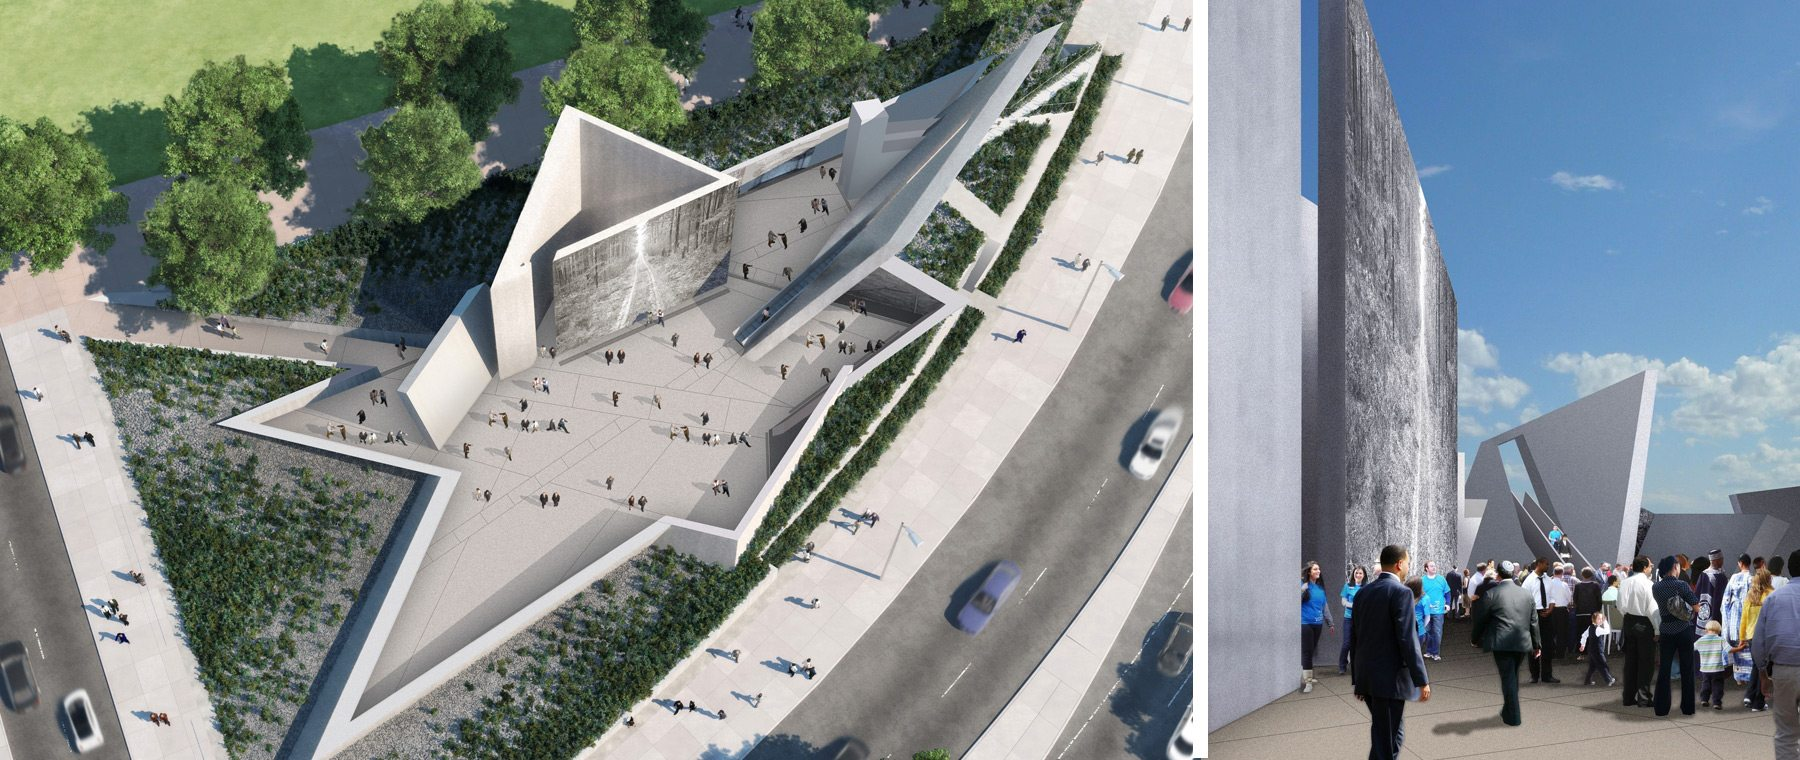 Holocaust Monument offers glimpses of hope